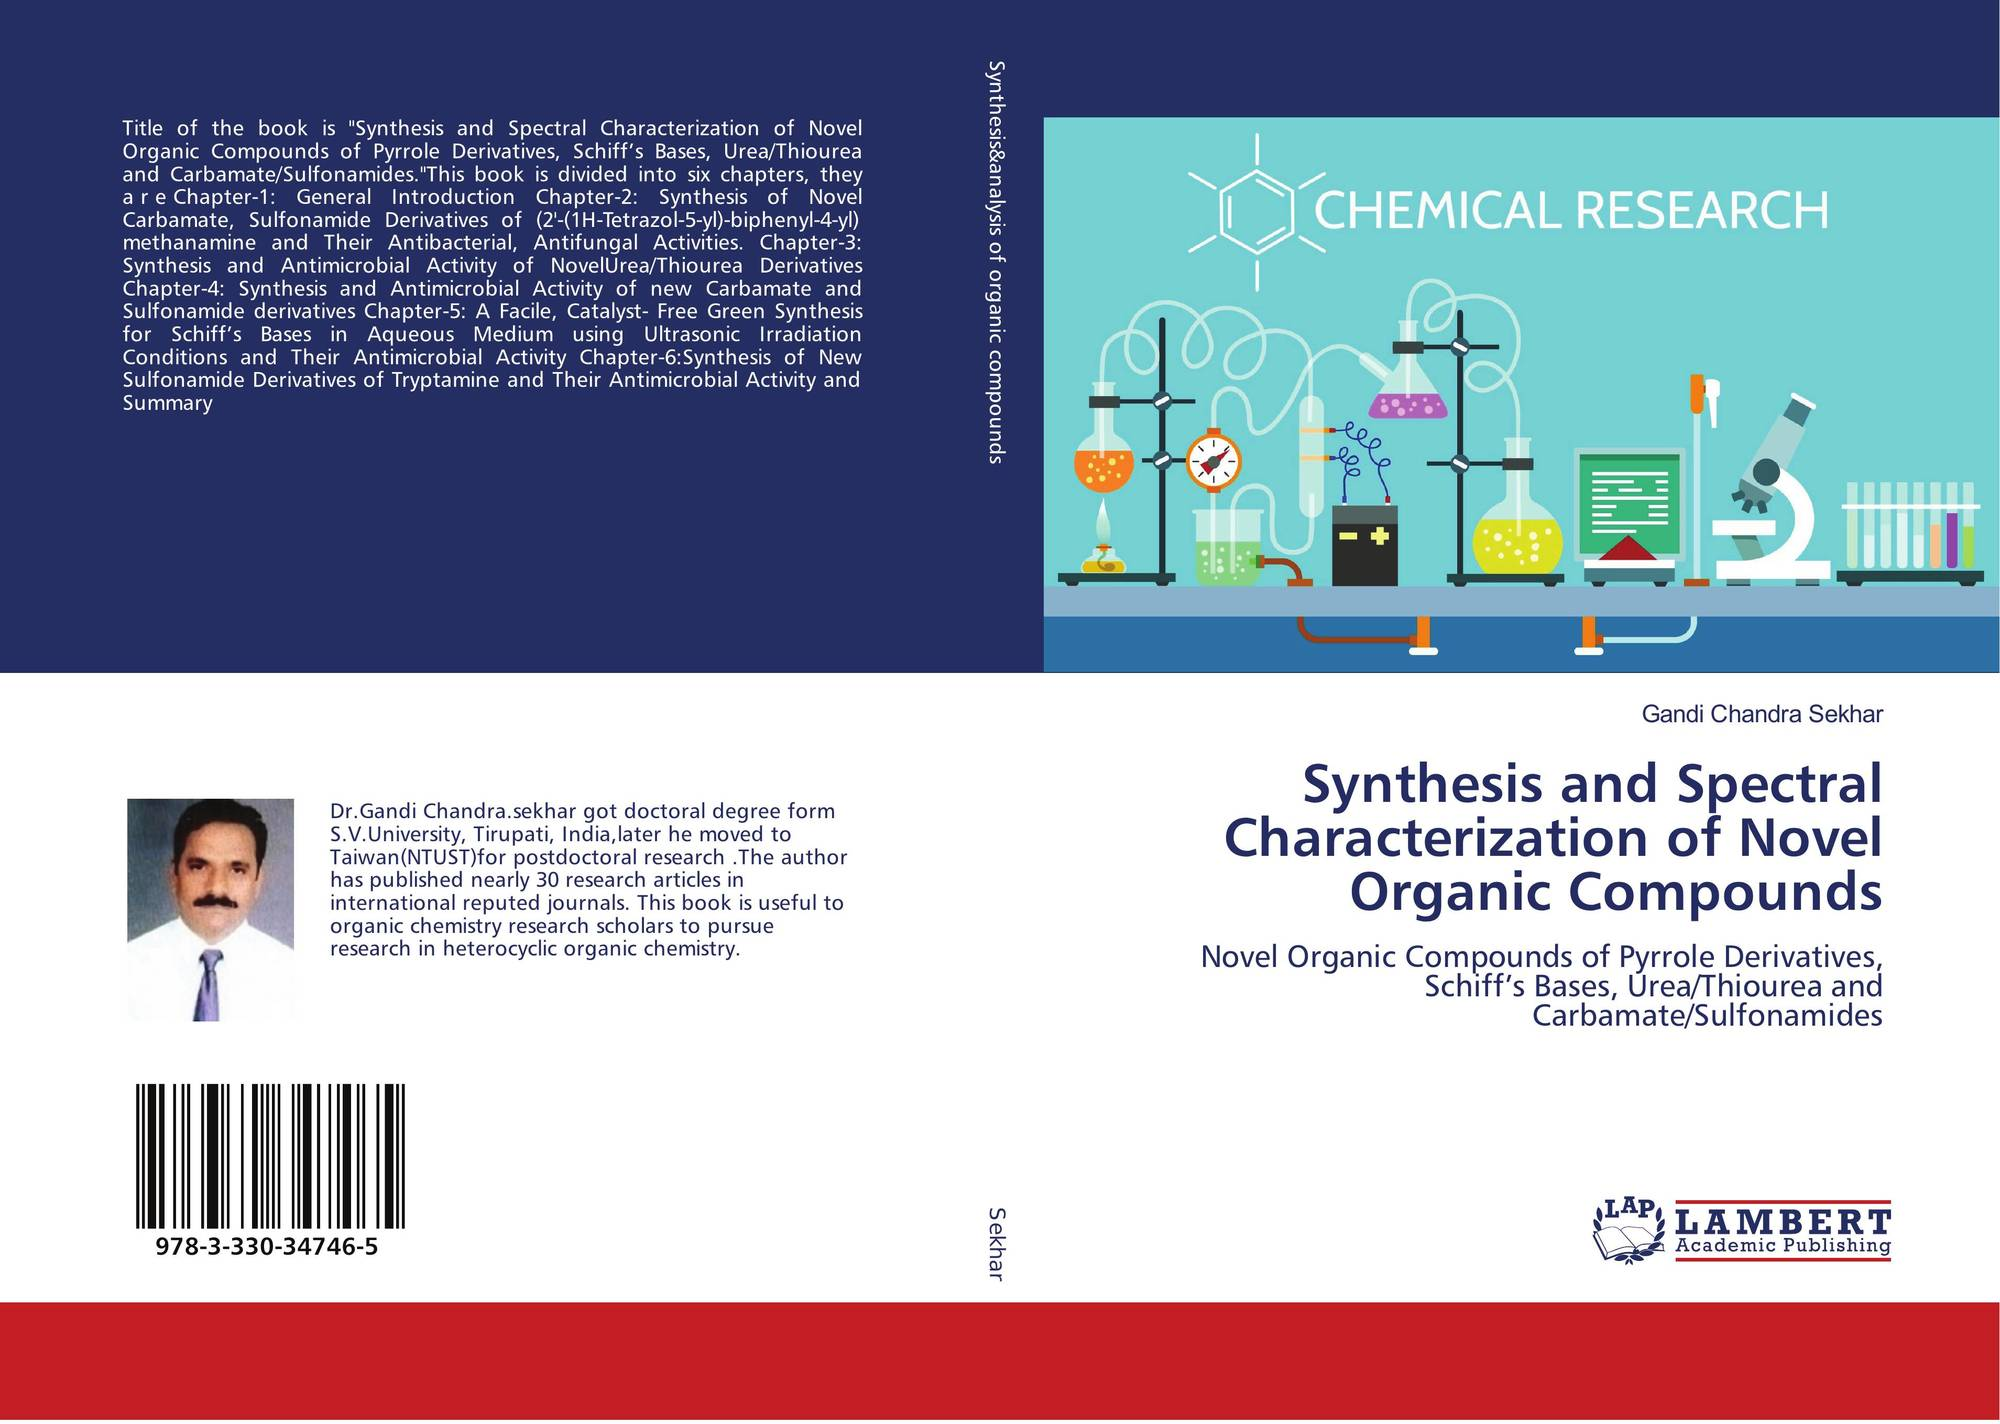 Synthesis and Spectral Characterization of Novel Organic Compounds